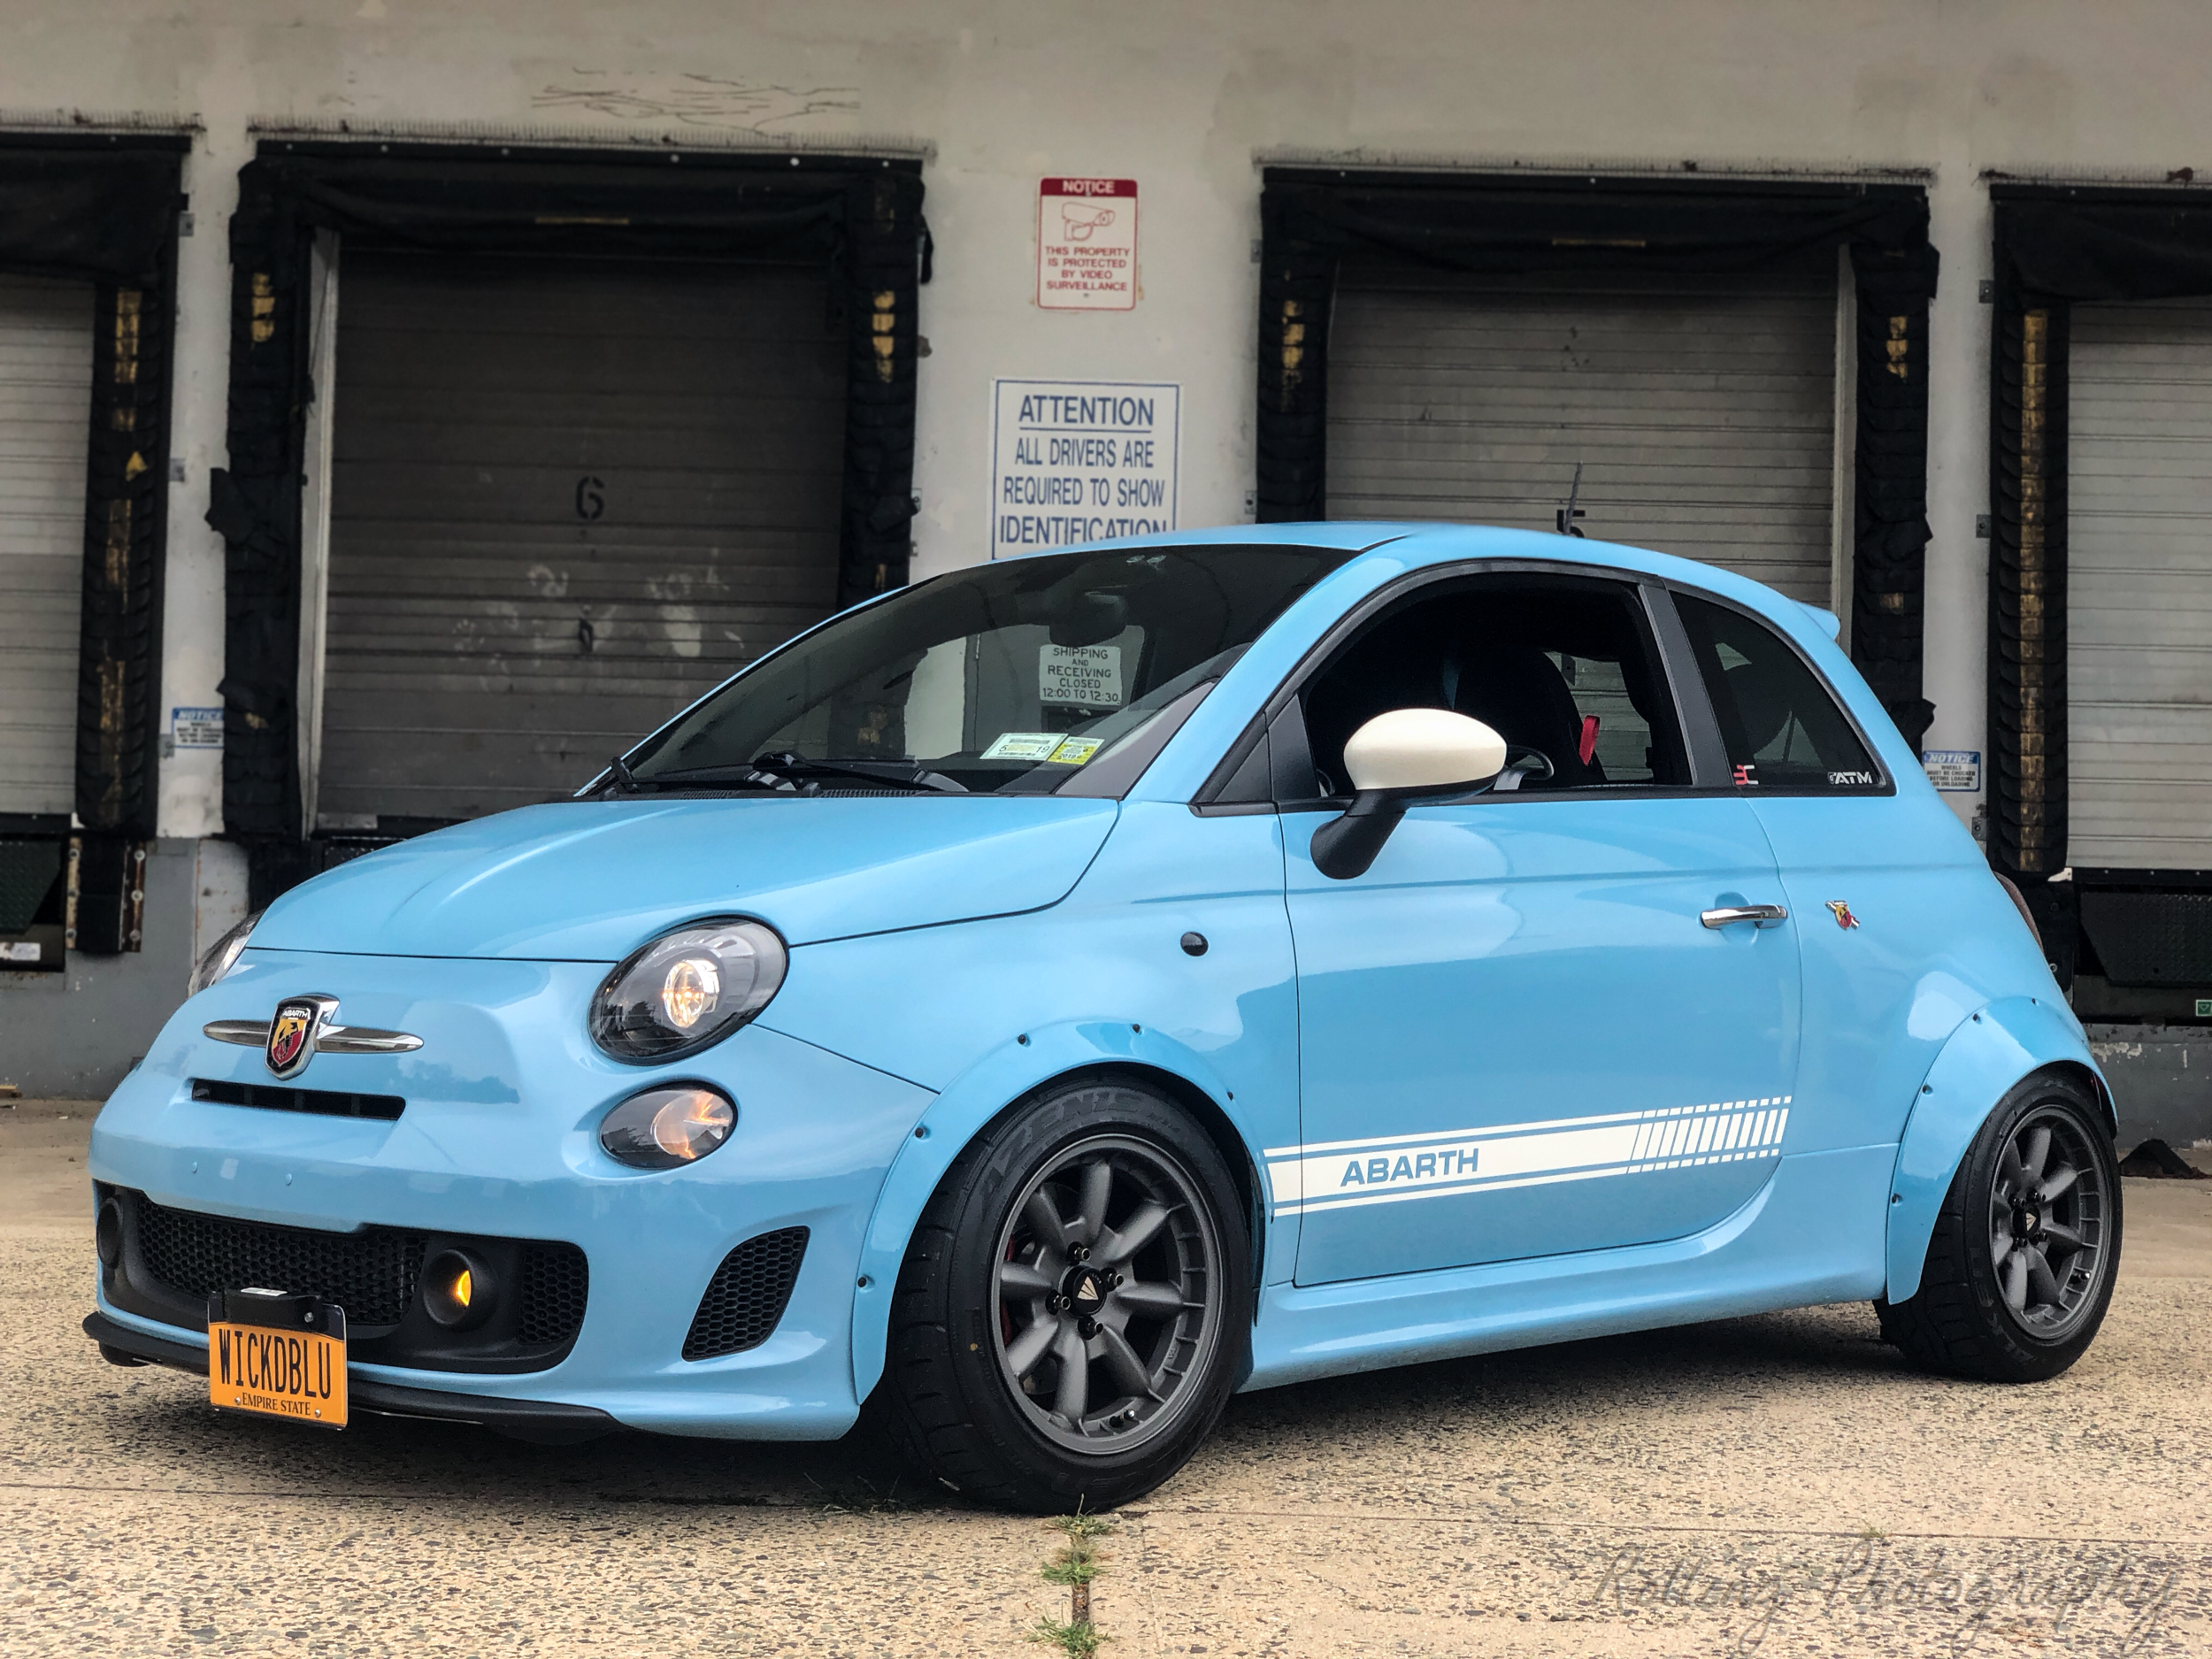 2017 Abarth WickdBlu loading docks.jpg